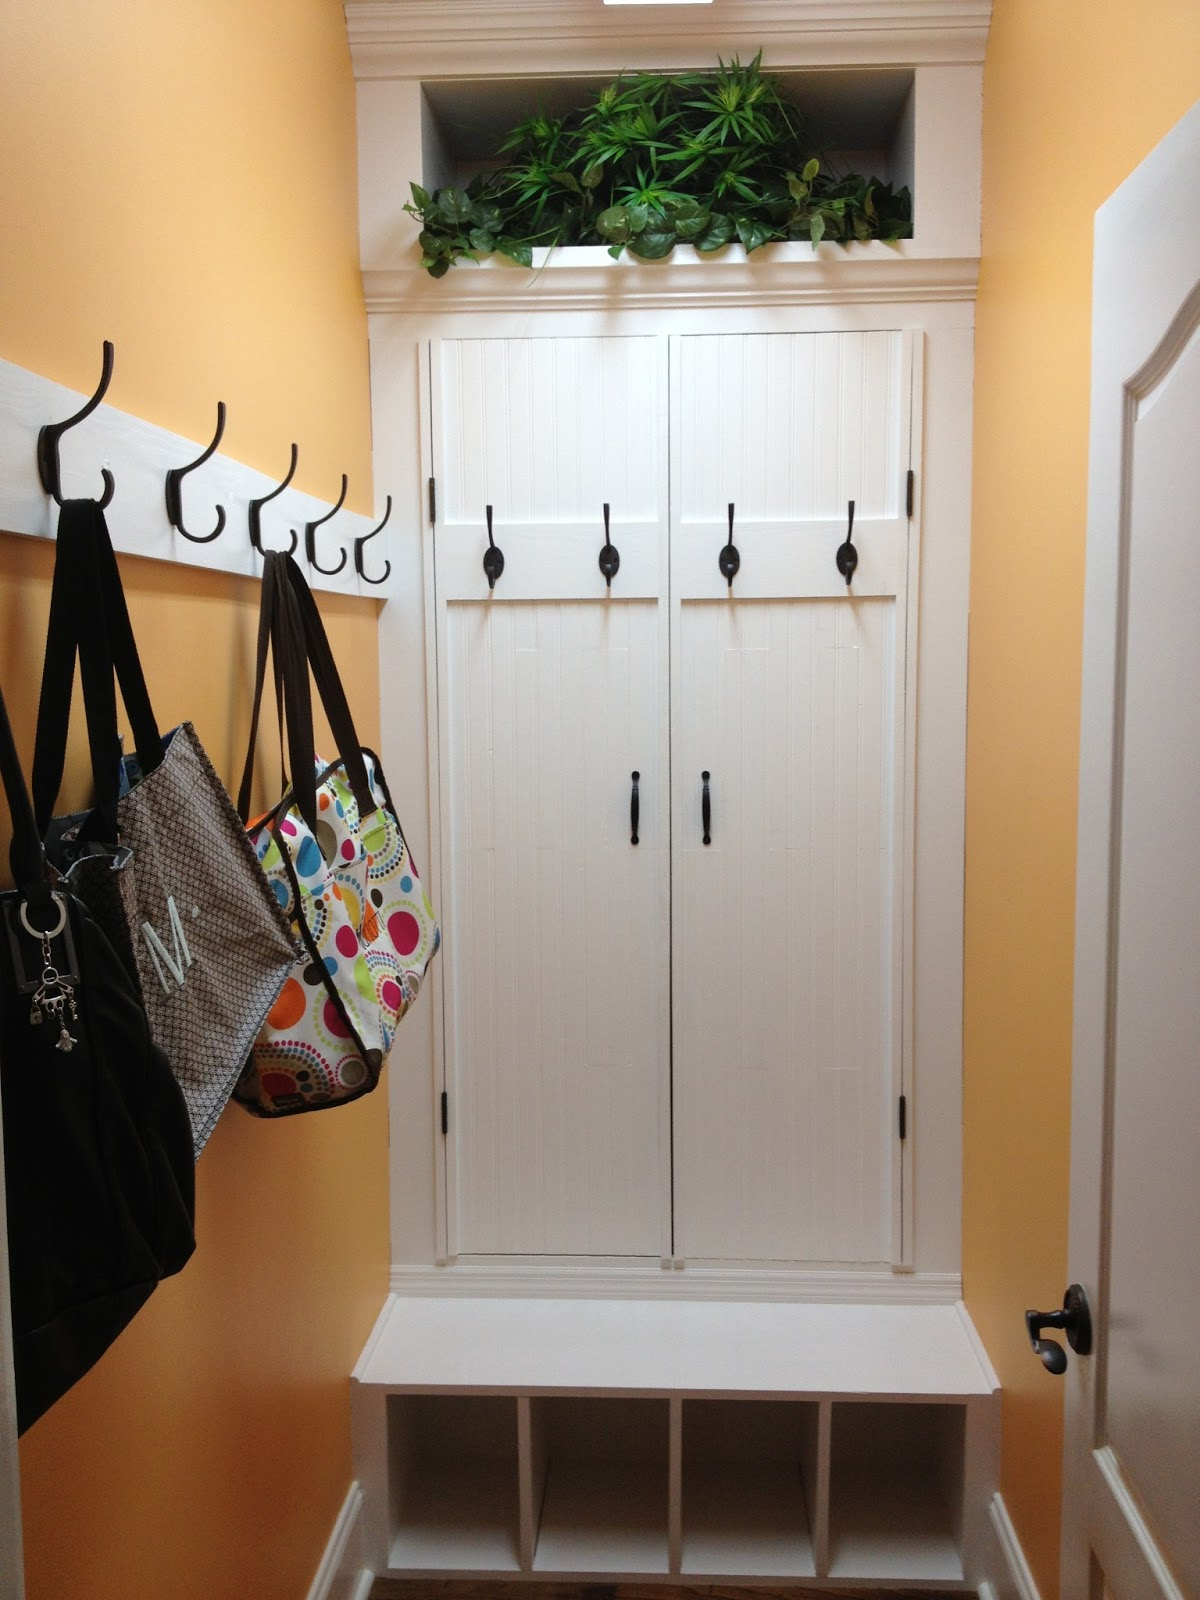 HOMEMADE HIDDEN SHOE STORAGE IN MUD ROOM & THINK MAKE LIVE LOVE: HOMEMADE HIDDEN SHOE STORAGE IN MUD ROOM